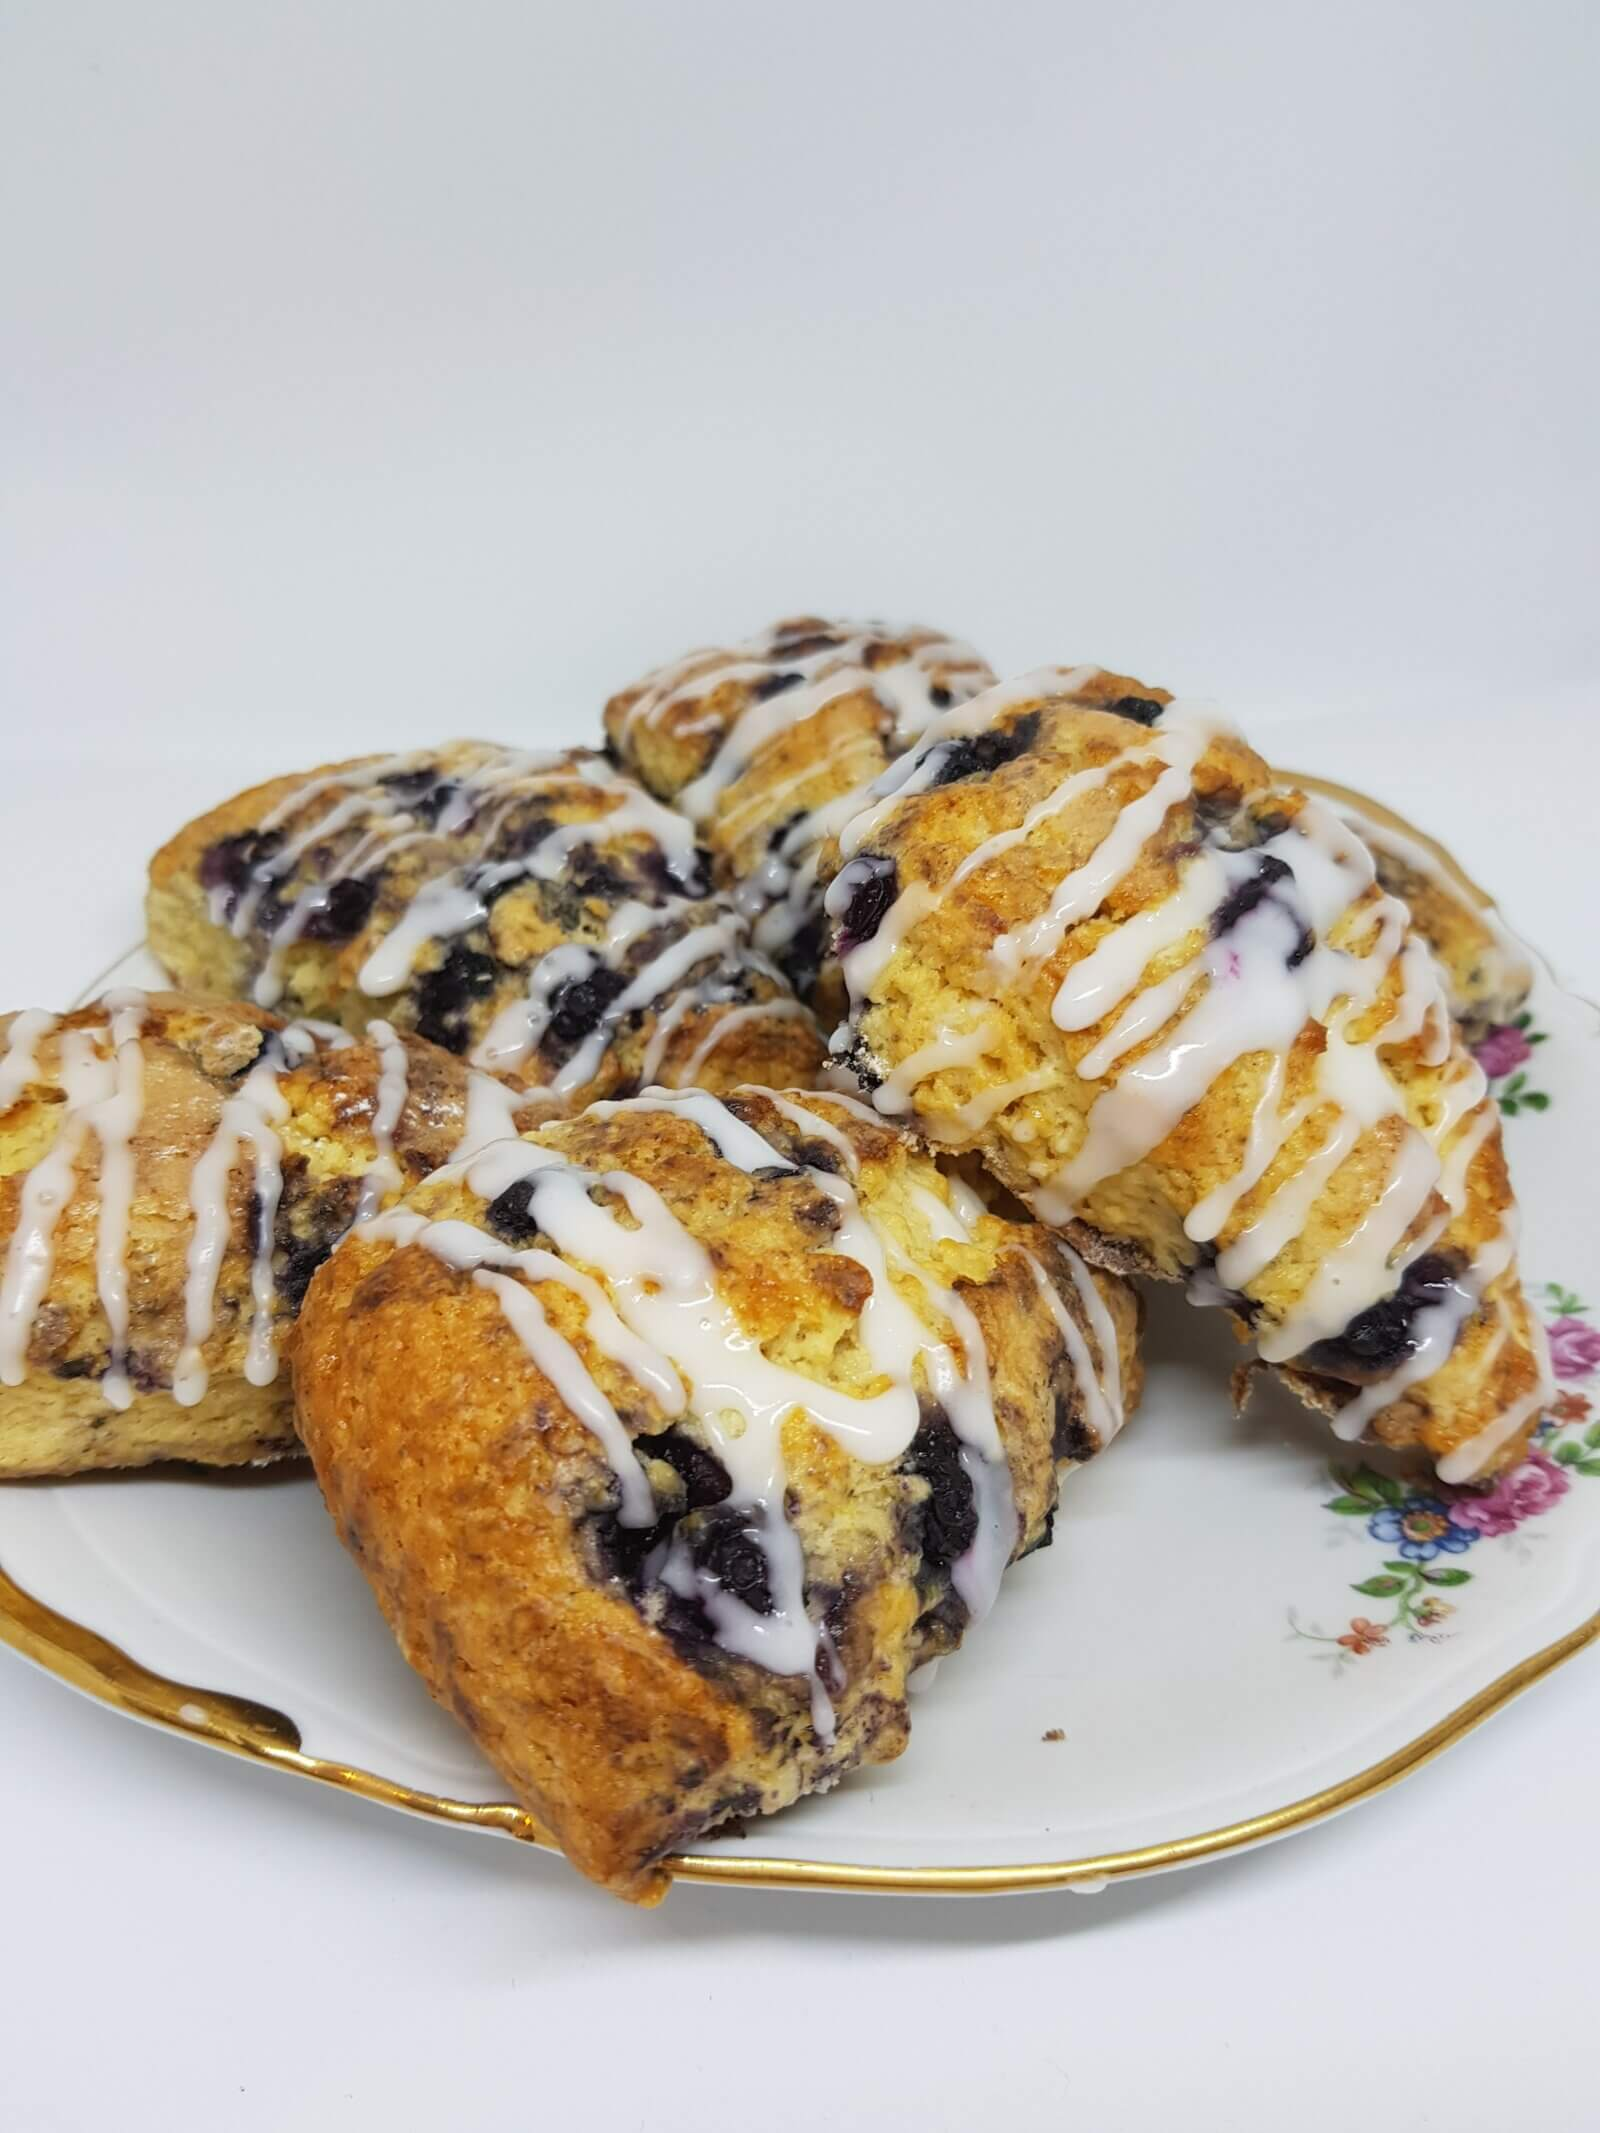 A plate of Lemon Blueberry Scones